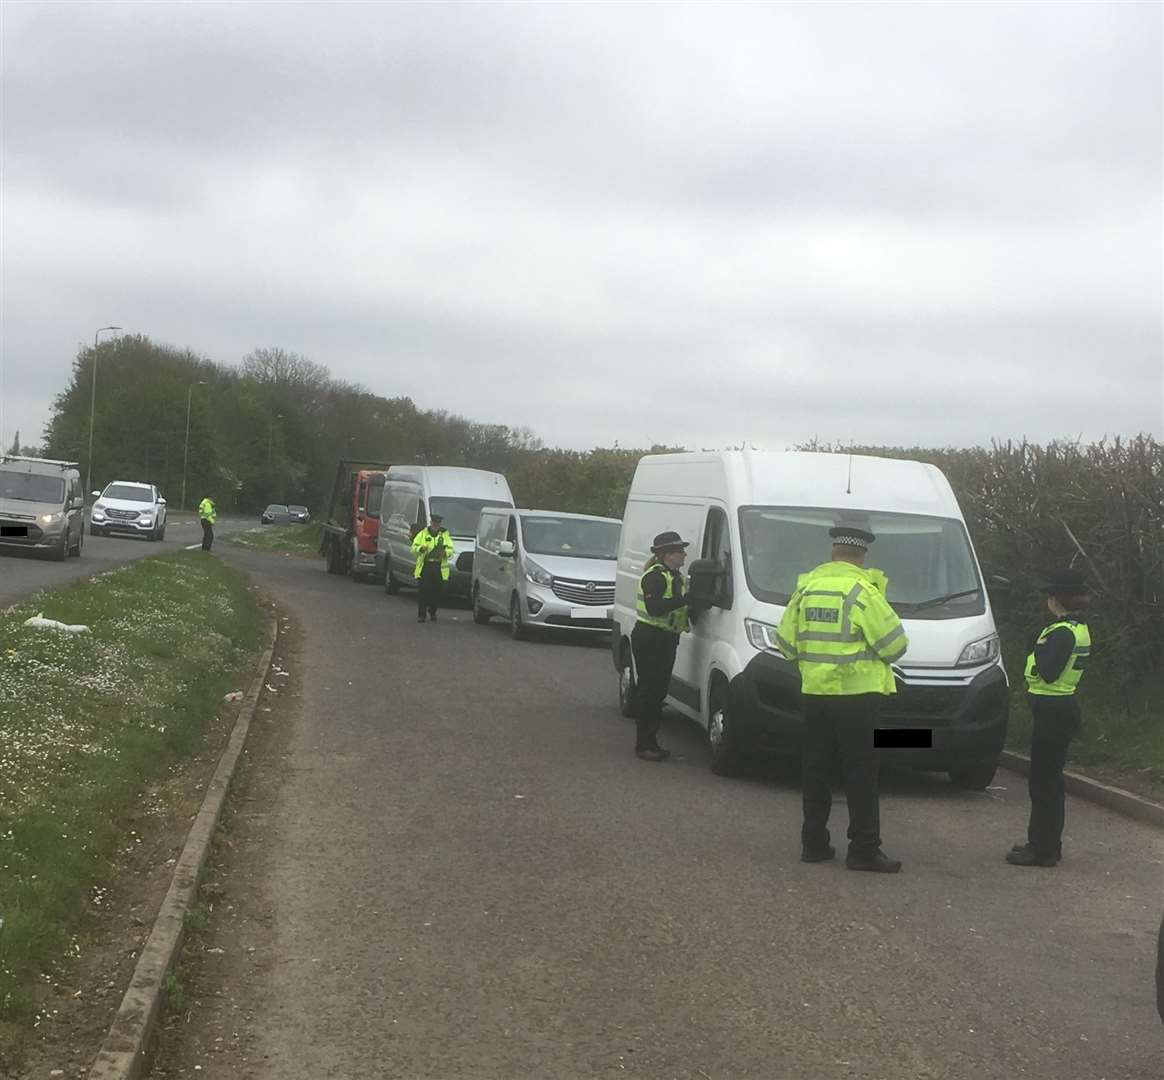 230 Drivers Stopped Between Stortford And Sawbridgeworth